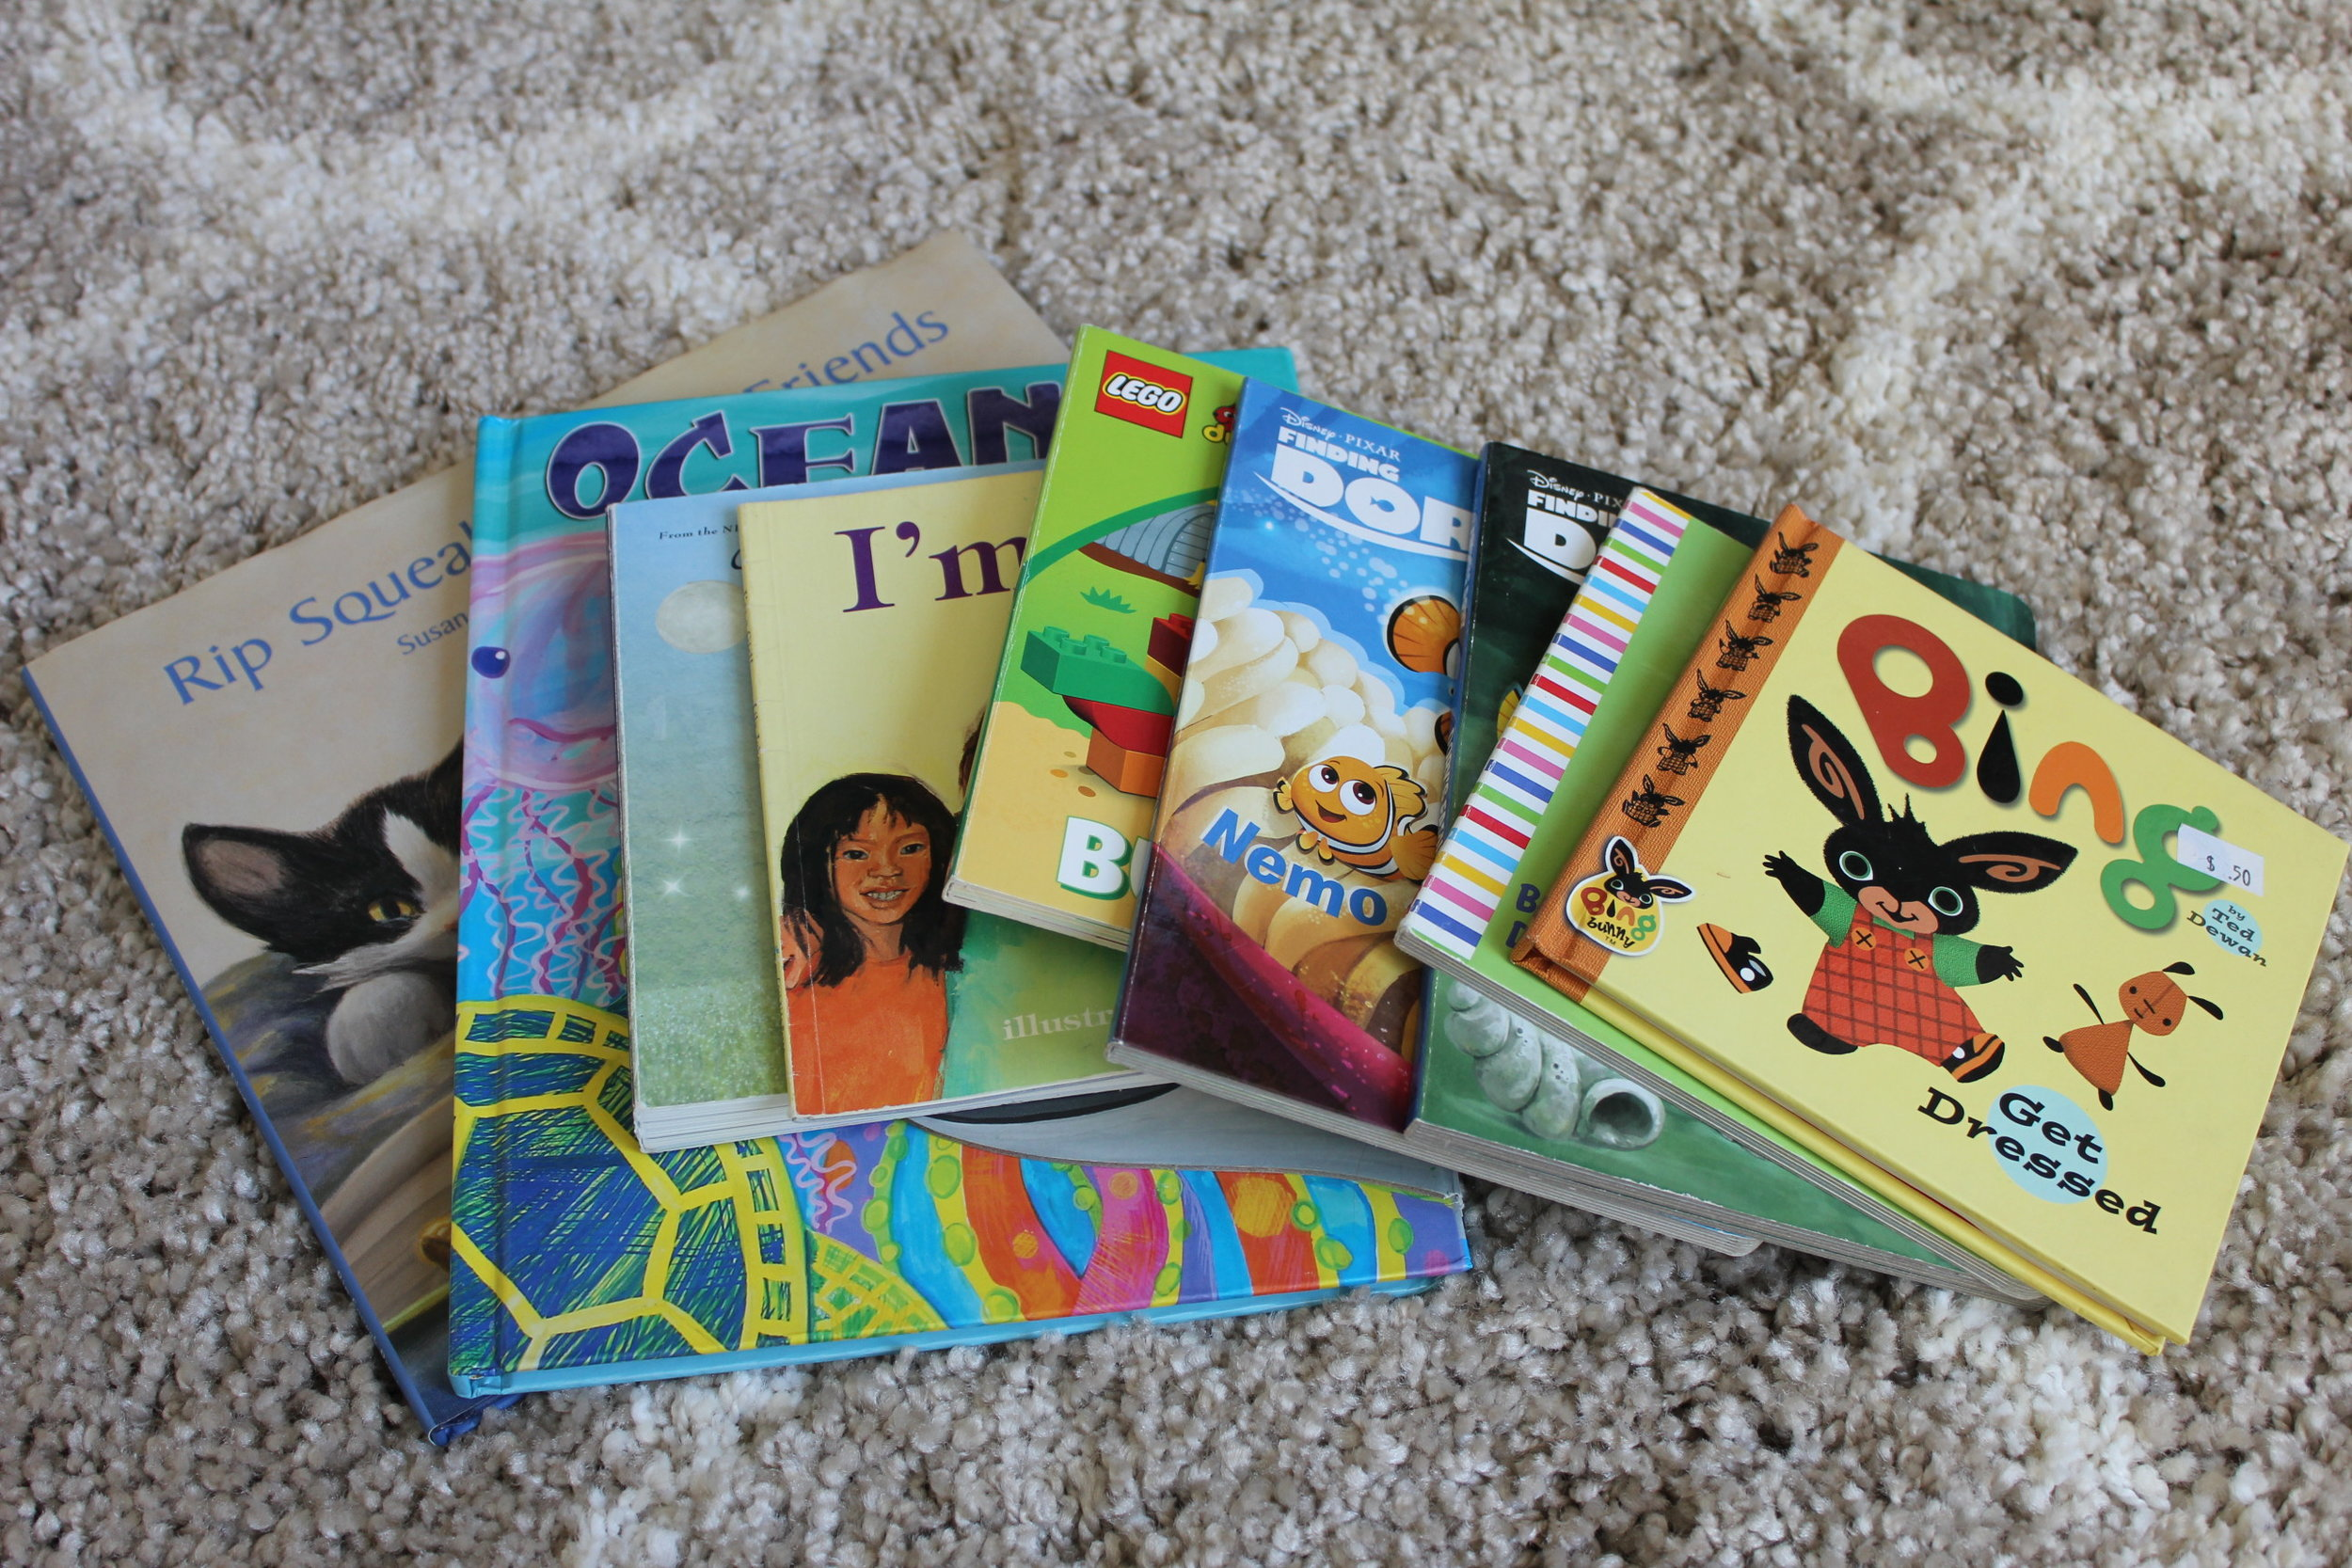 All the books that Addie selected to donate to the local library.